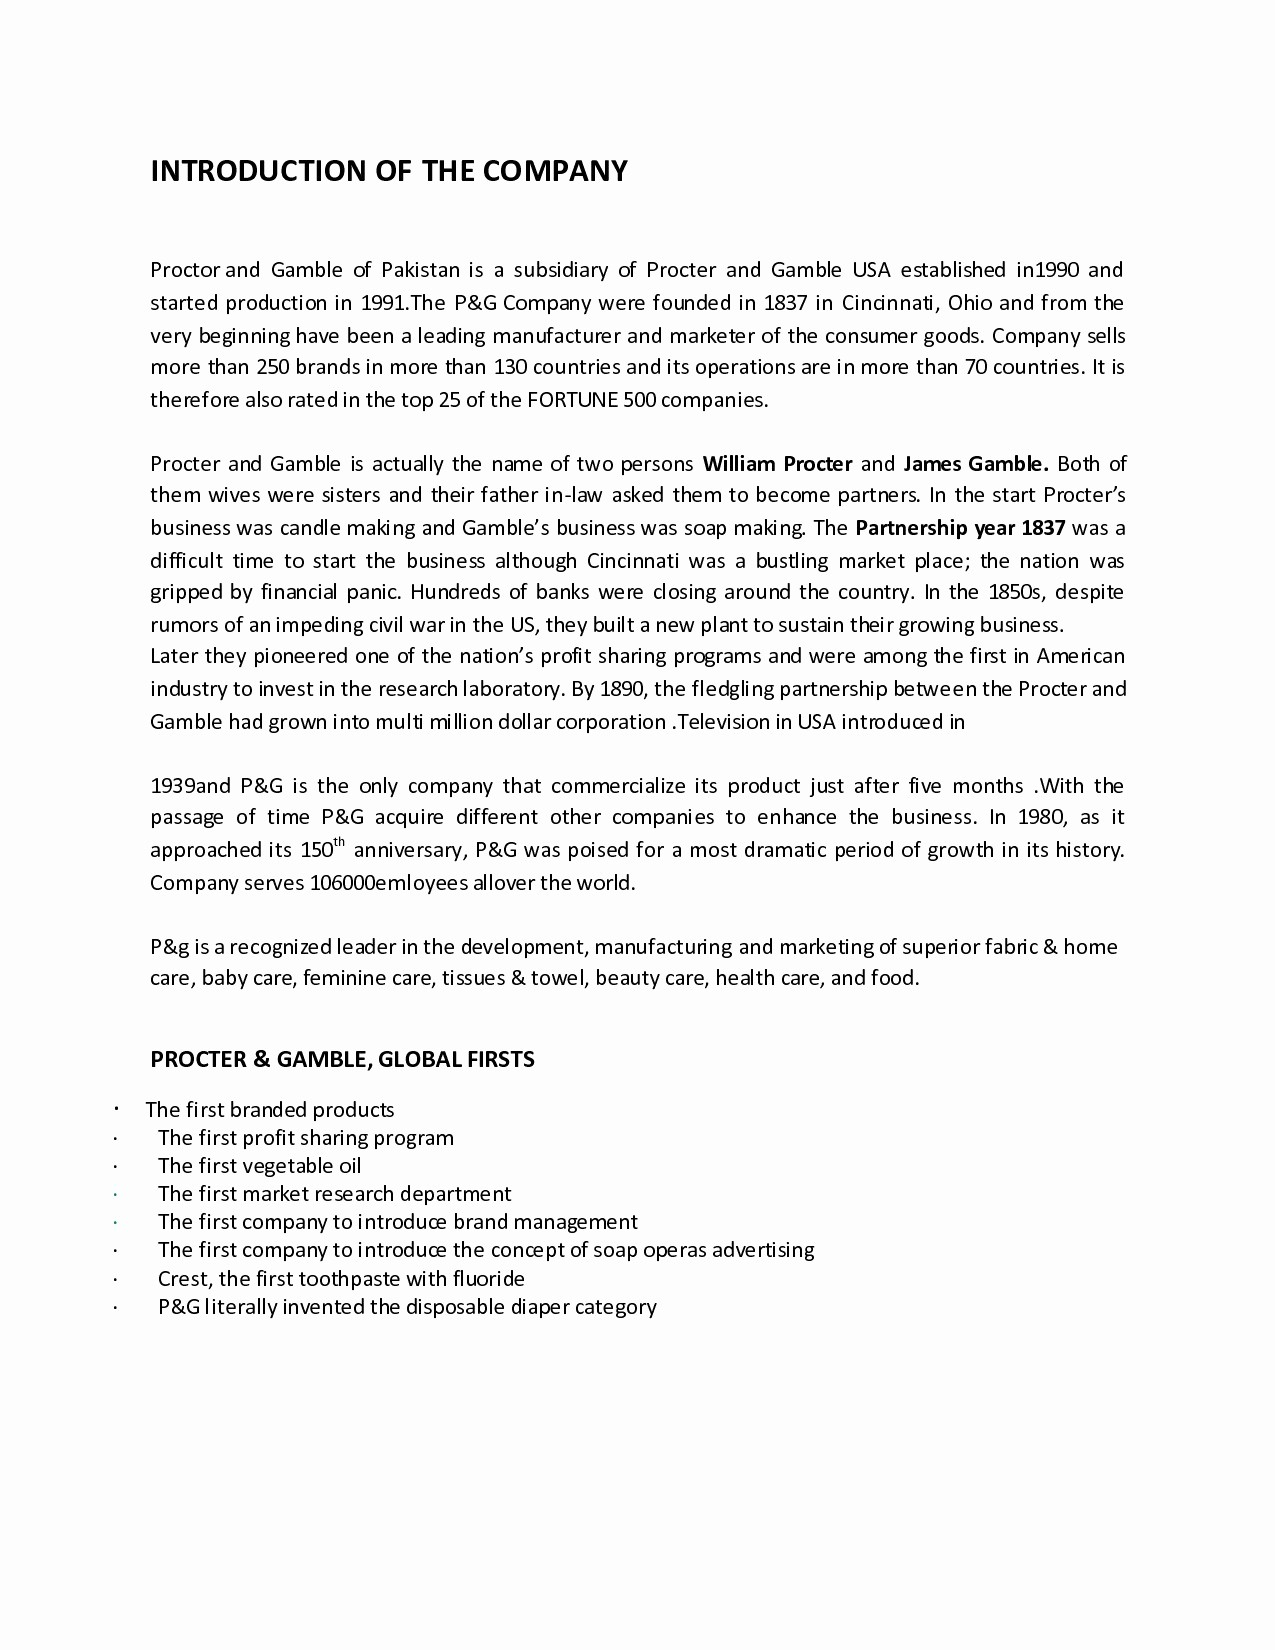 Business Letter Template Via Email - Sample Email Cover Letter for Business Proposal